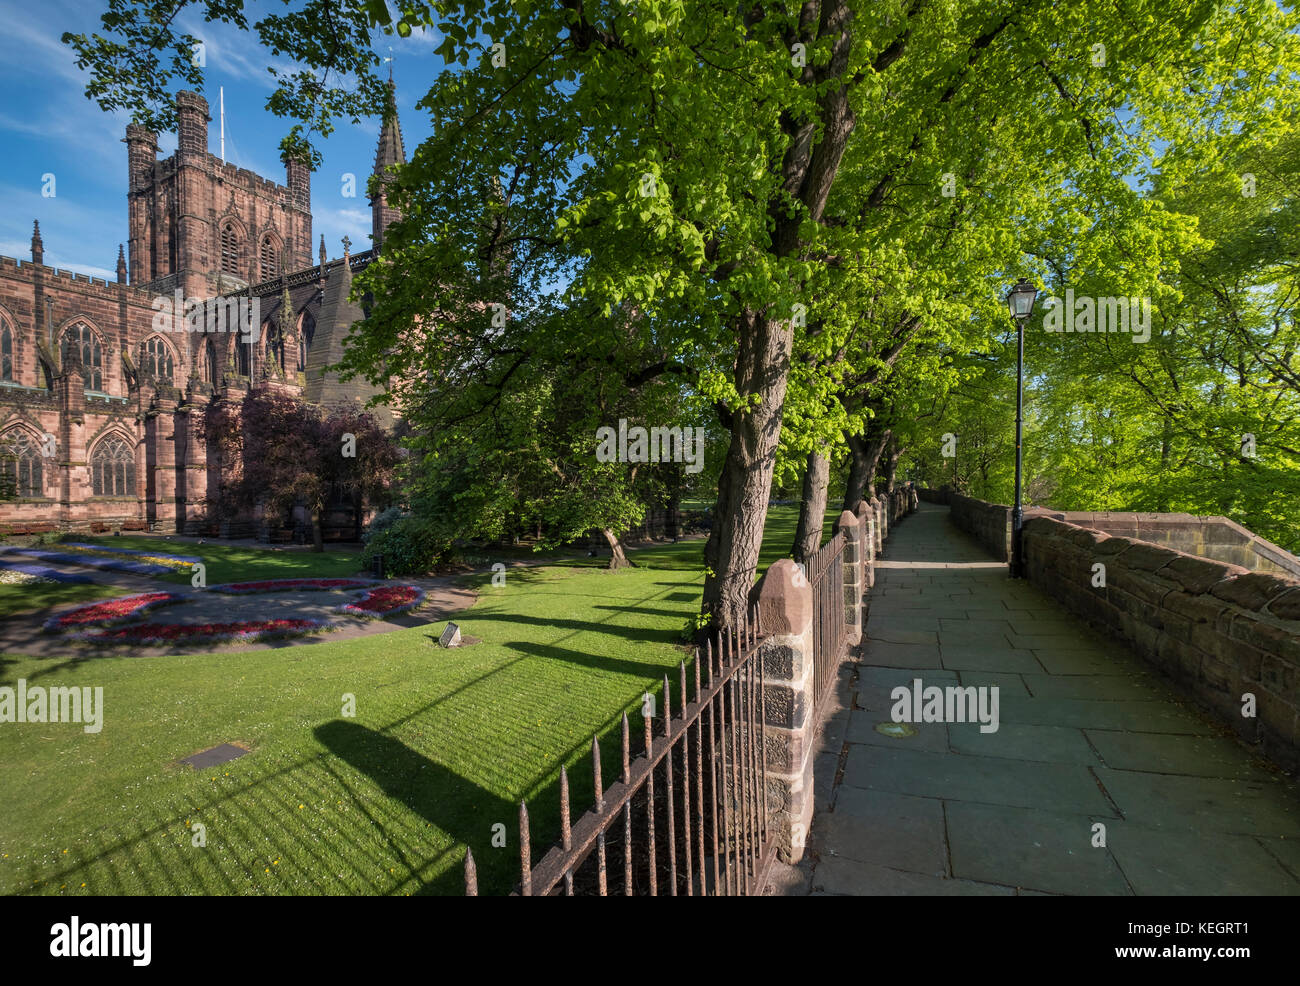 Chester Cathedral and the City Walls, Chester, Cheshire, England, UK - Stock Image